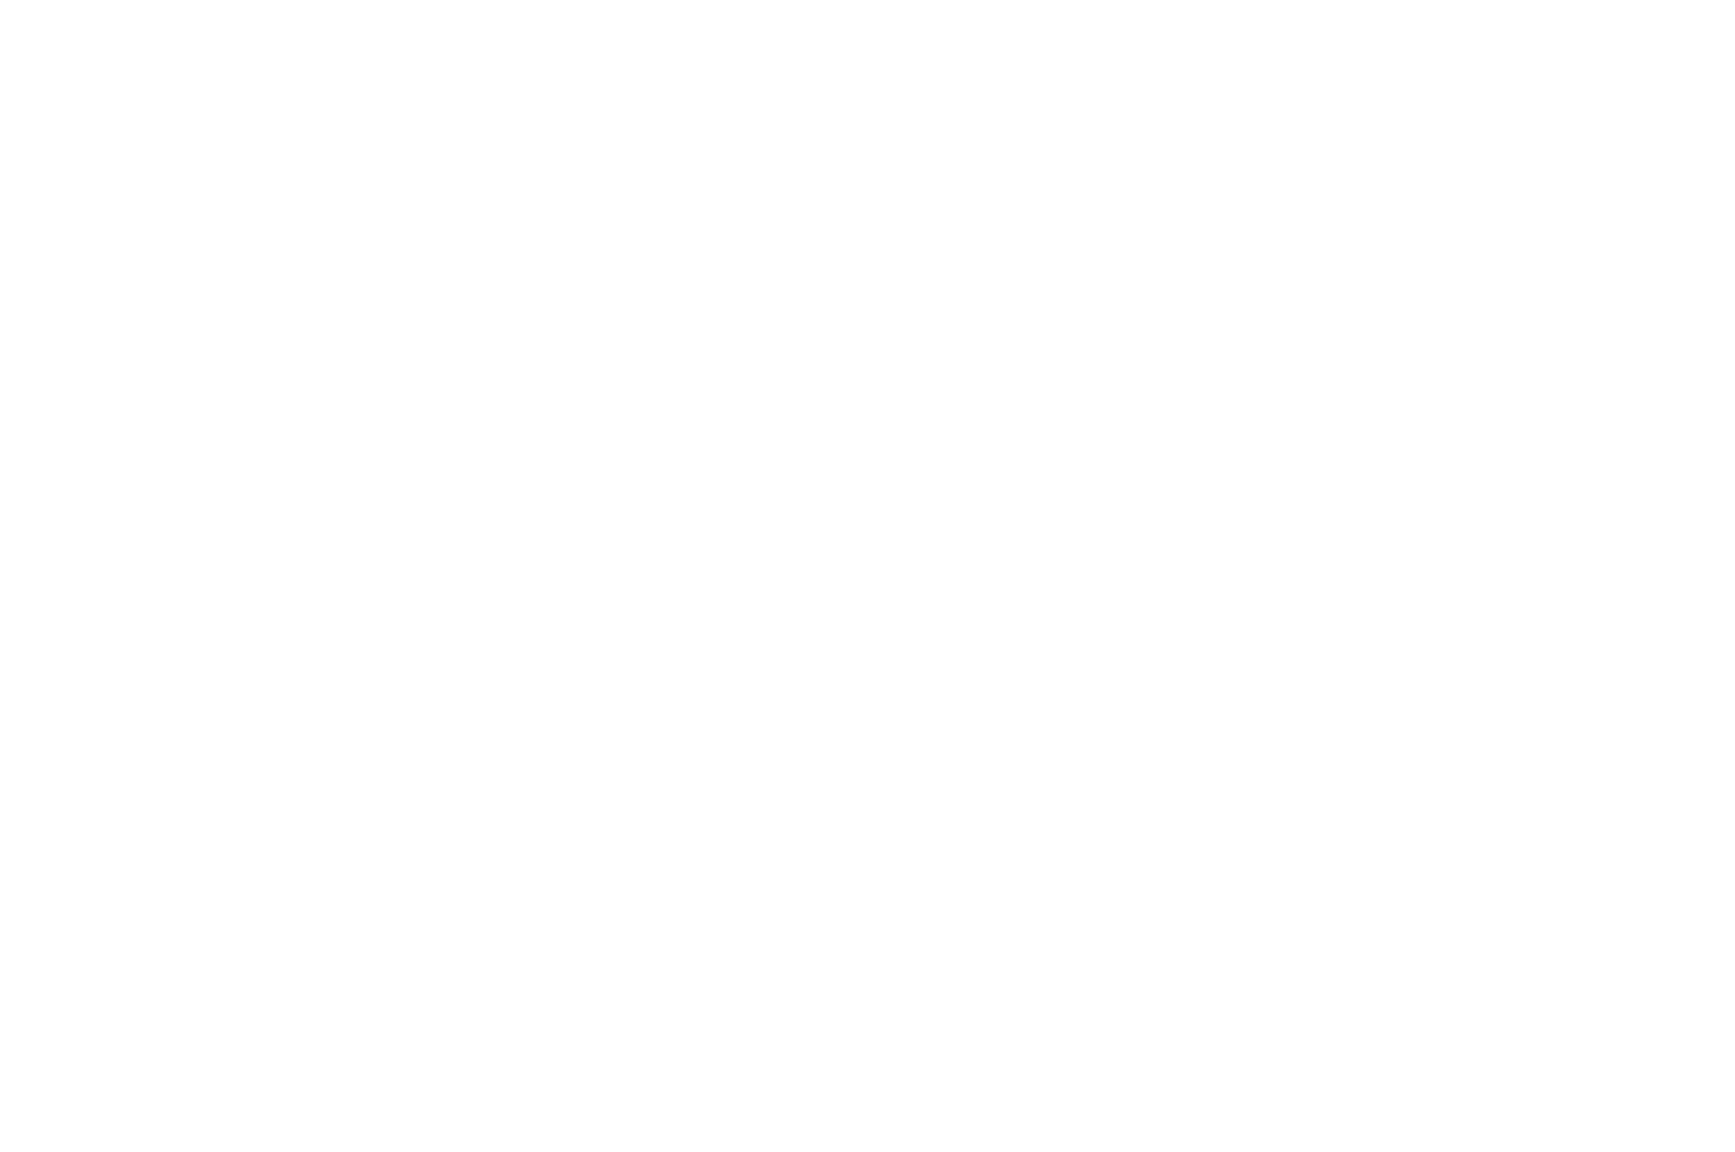 FINALIST - The Palm Springs International Comedy Festival - 2018.png